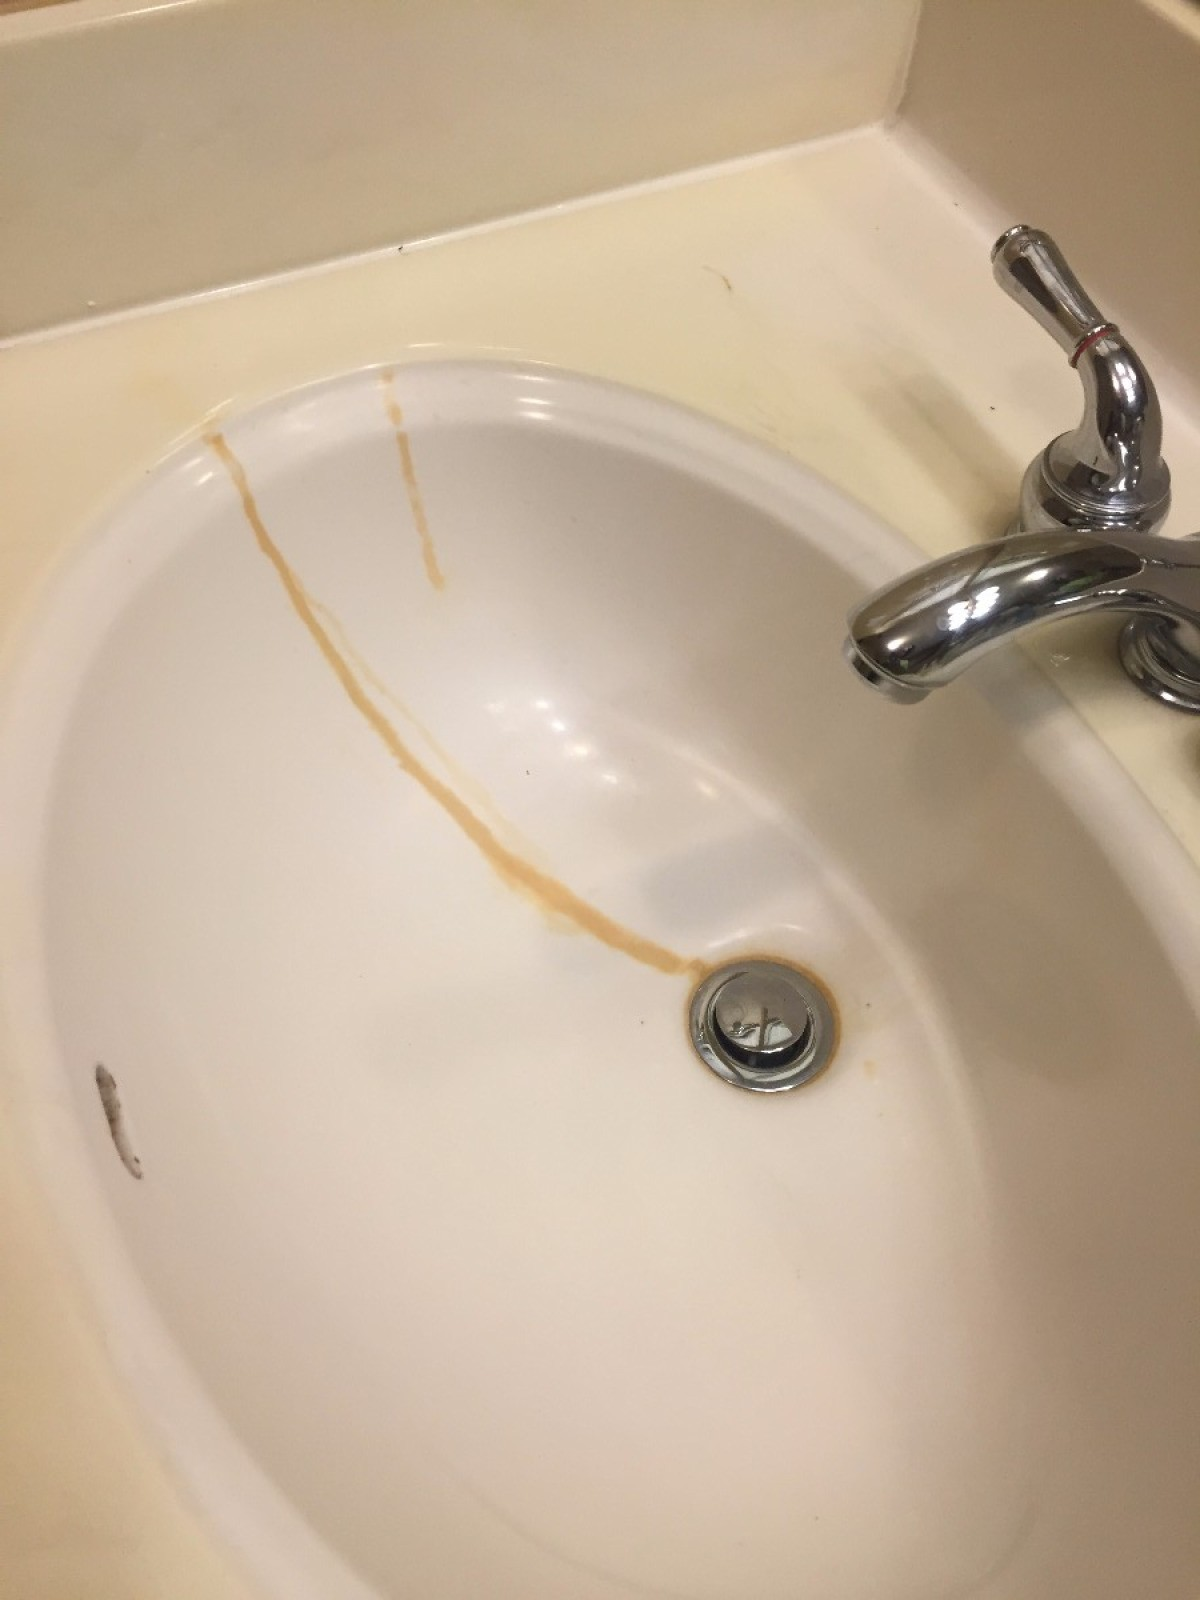 Removing An Air Freshener Stain From Sink Thriftyfun